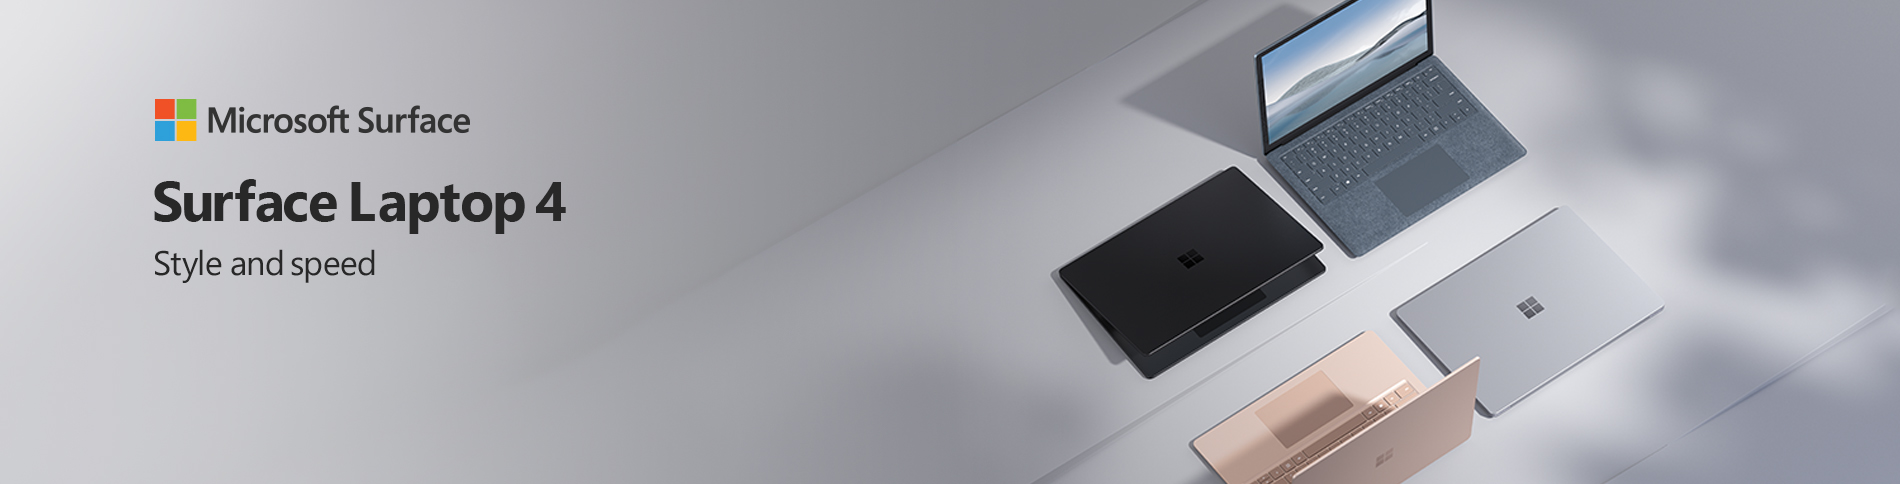 Microsoft Surface Laptop4 Launchday 04.14.banner